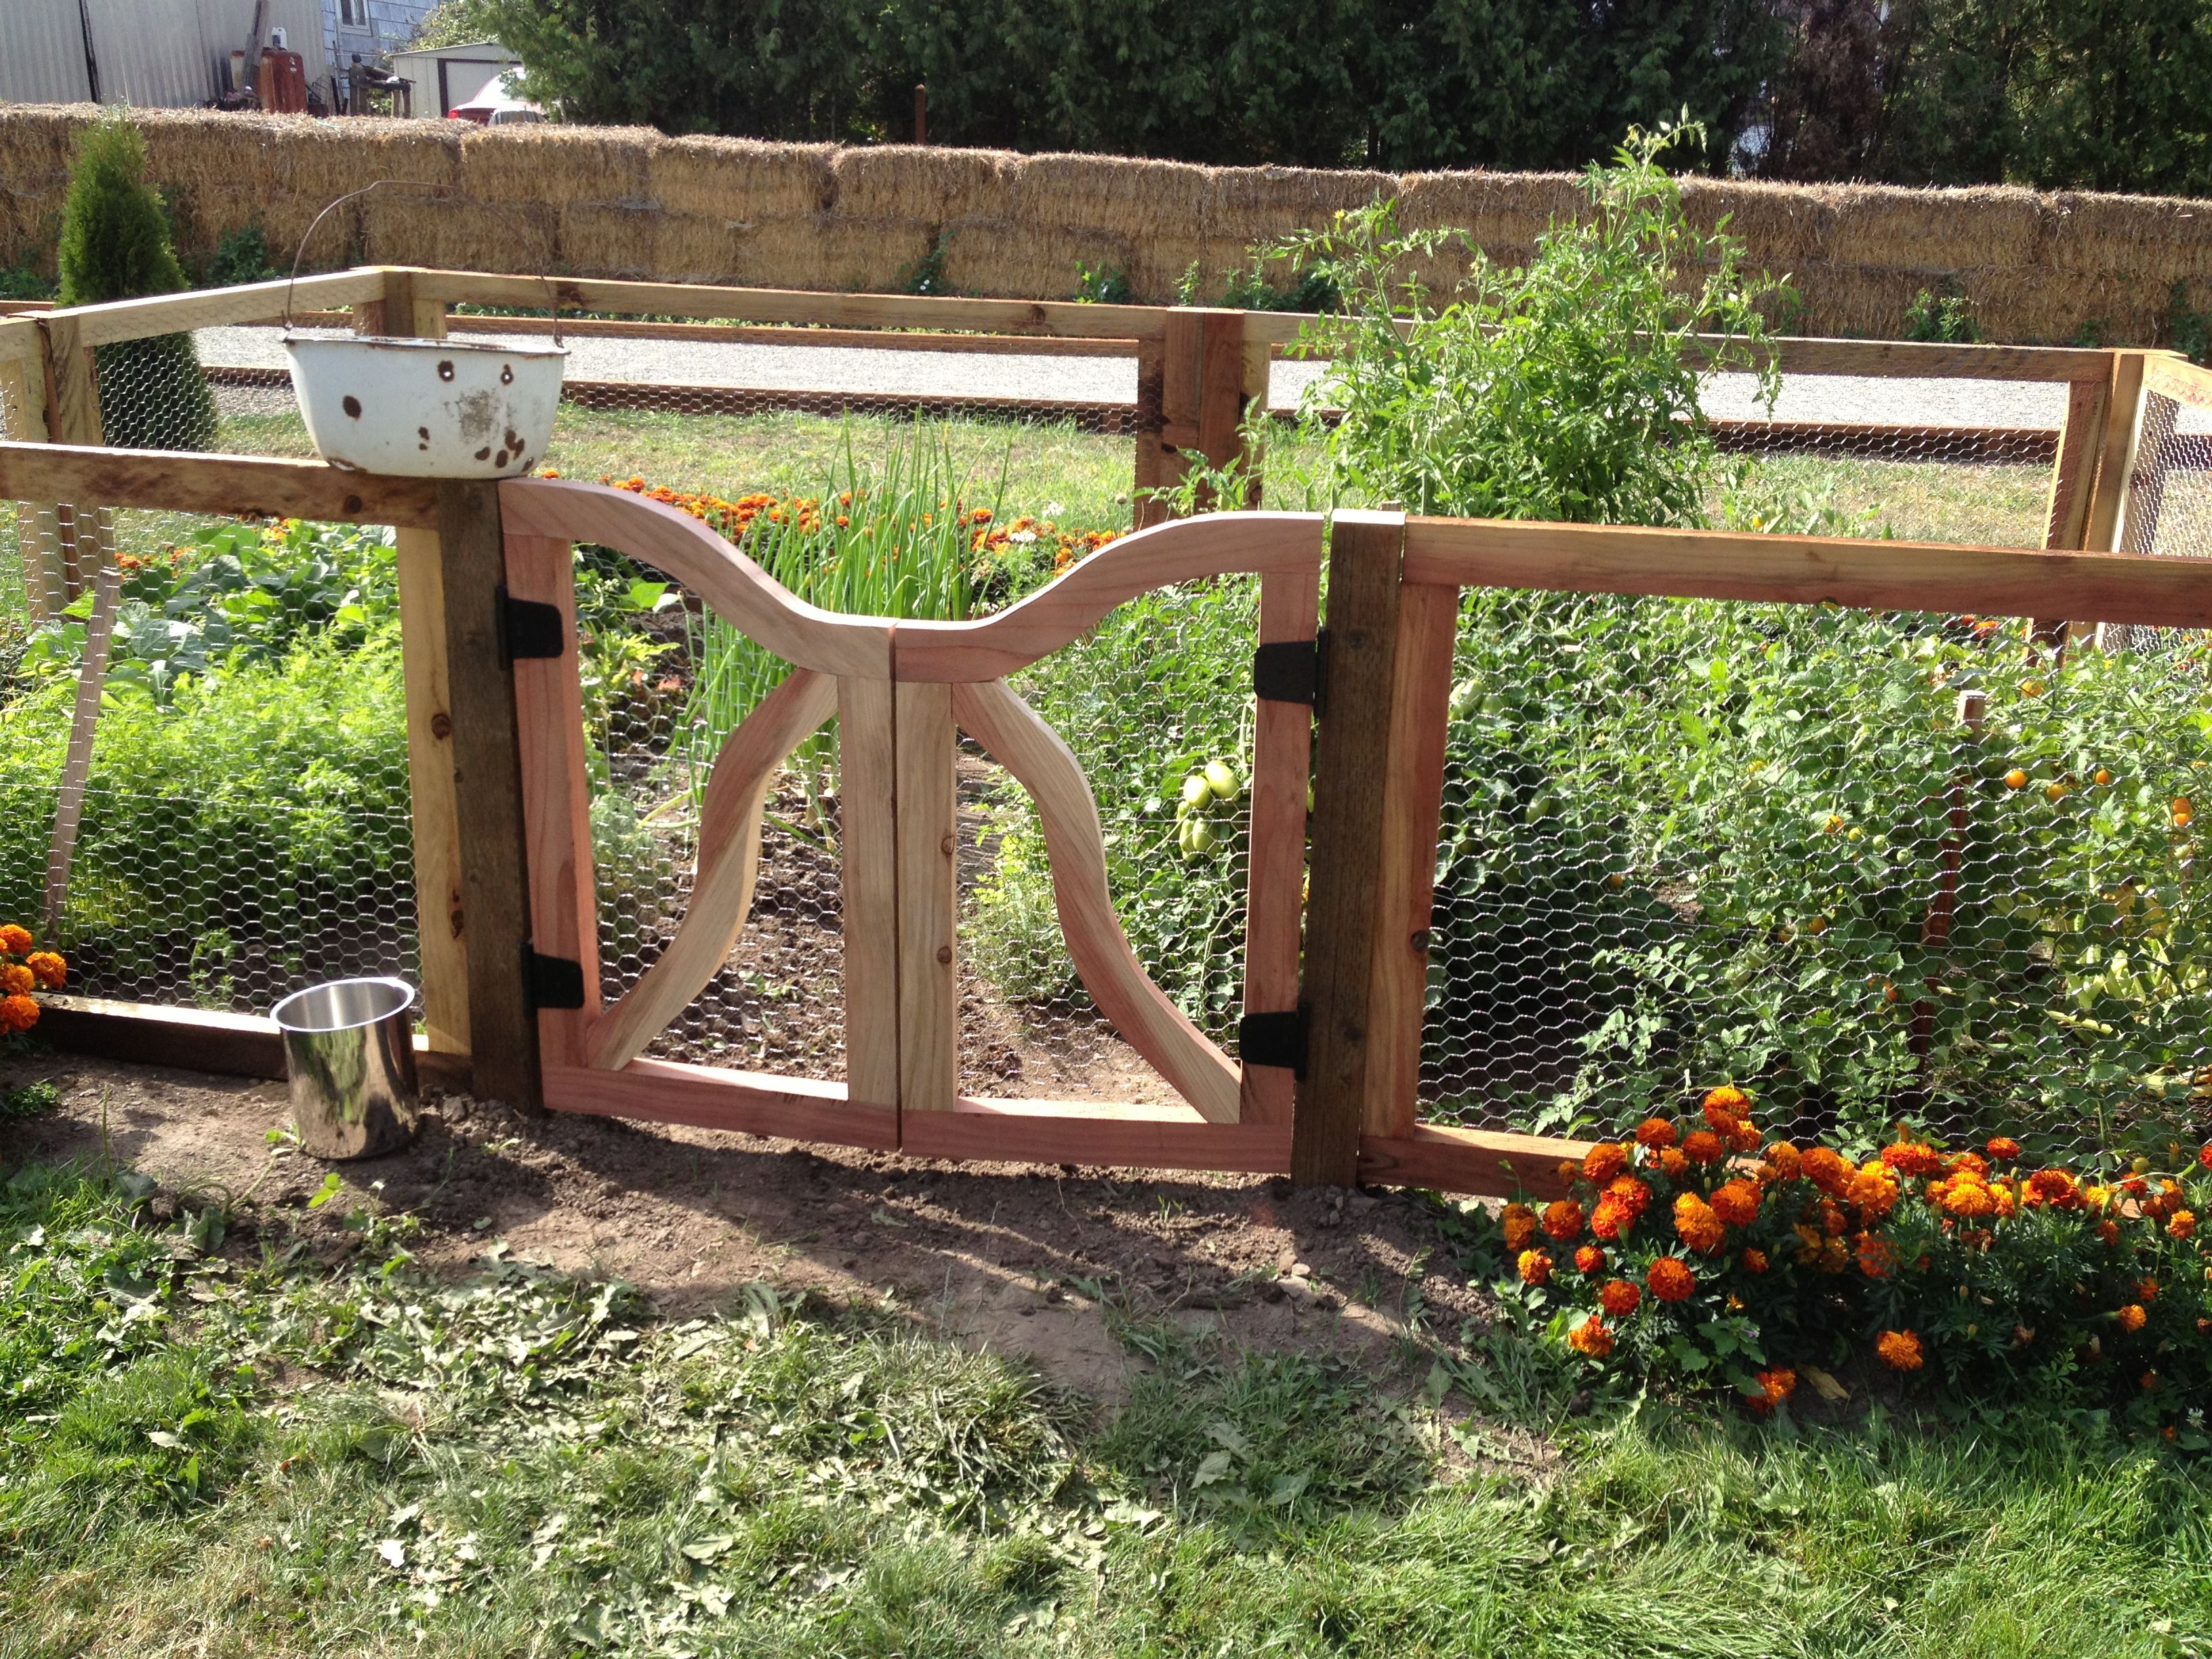 93 Best Images About Pretty Garden Gates And Fences On Pinterest